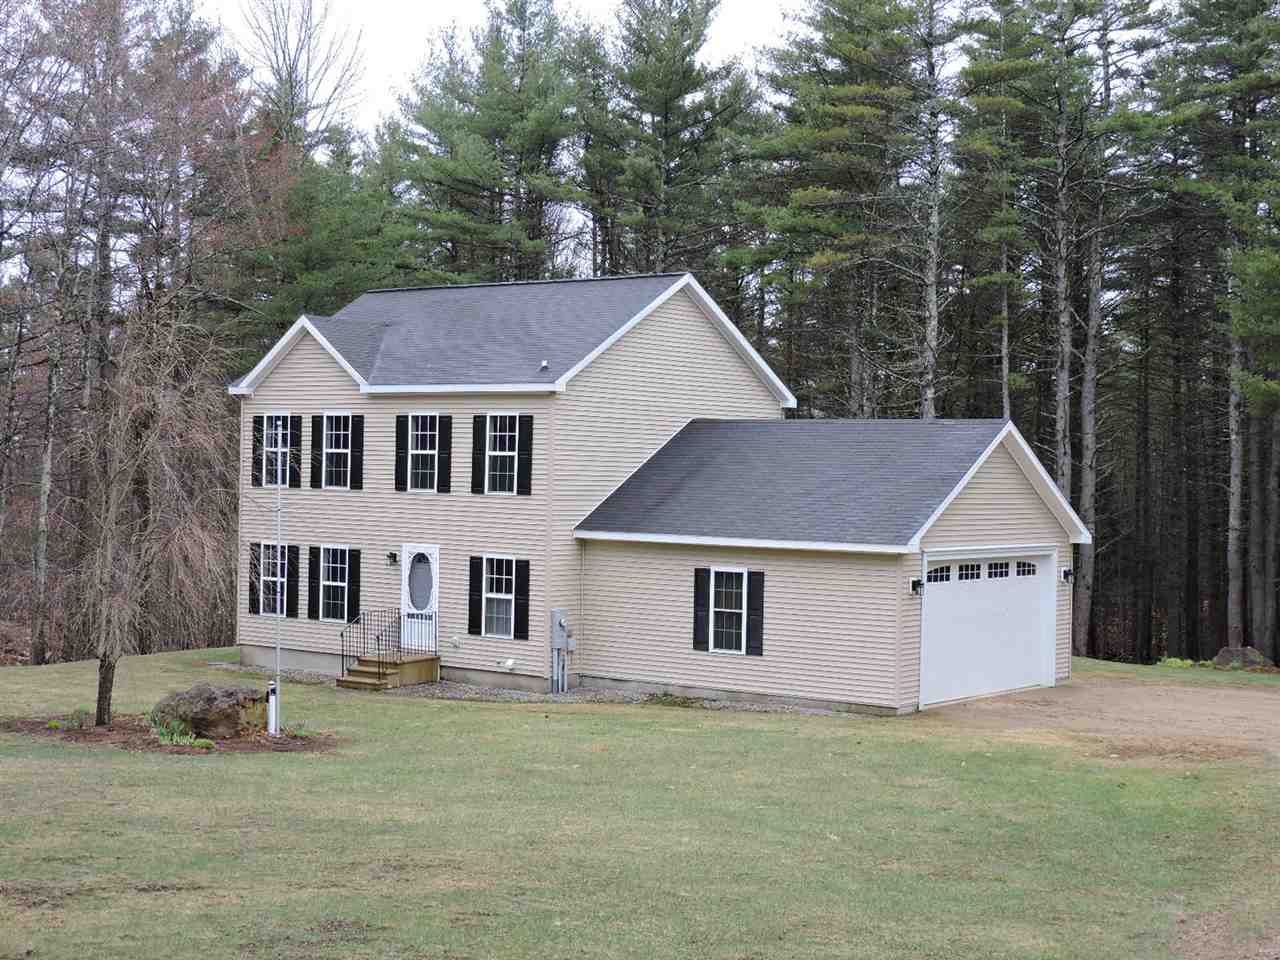 SANBORNTON NH Homes for sale